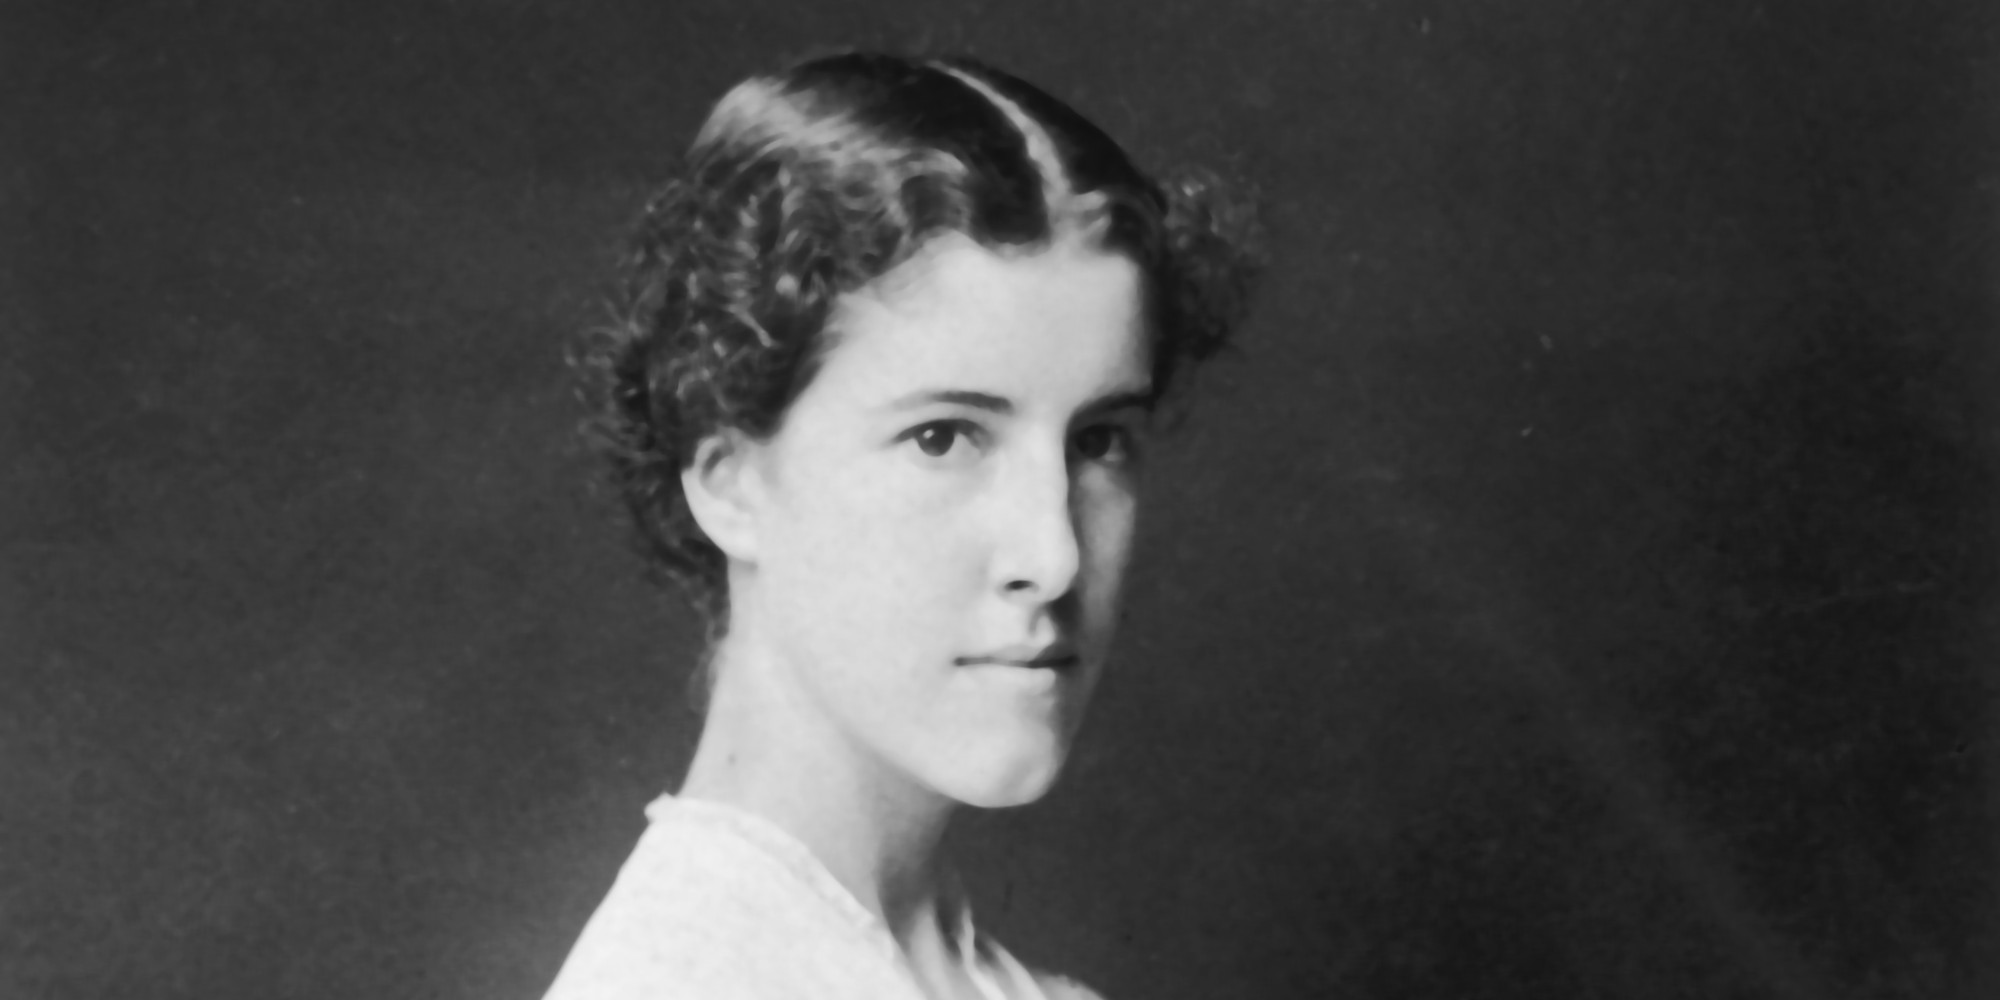 Breaking free of oppression in the yellow wallpaper by charlotte perkins gilman